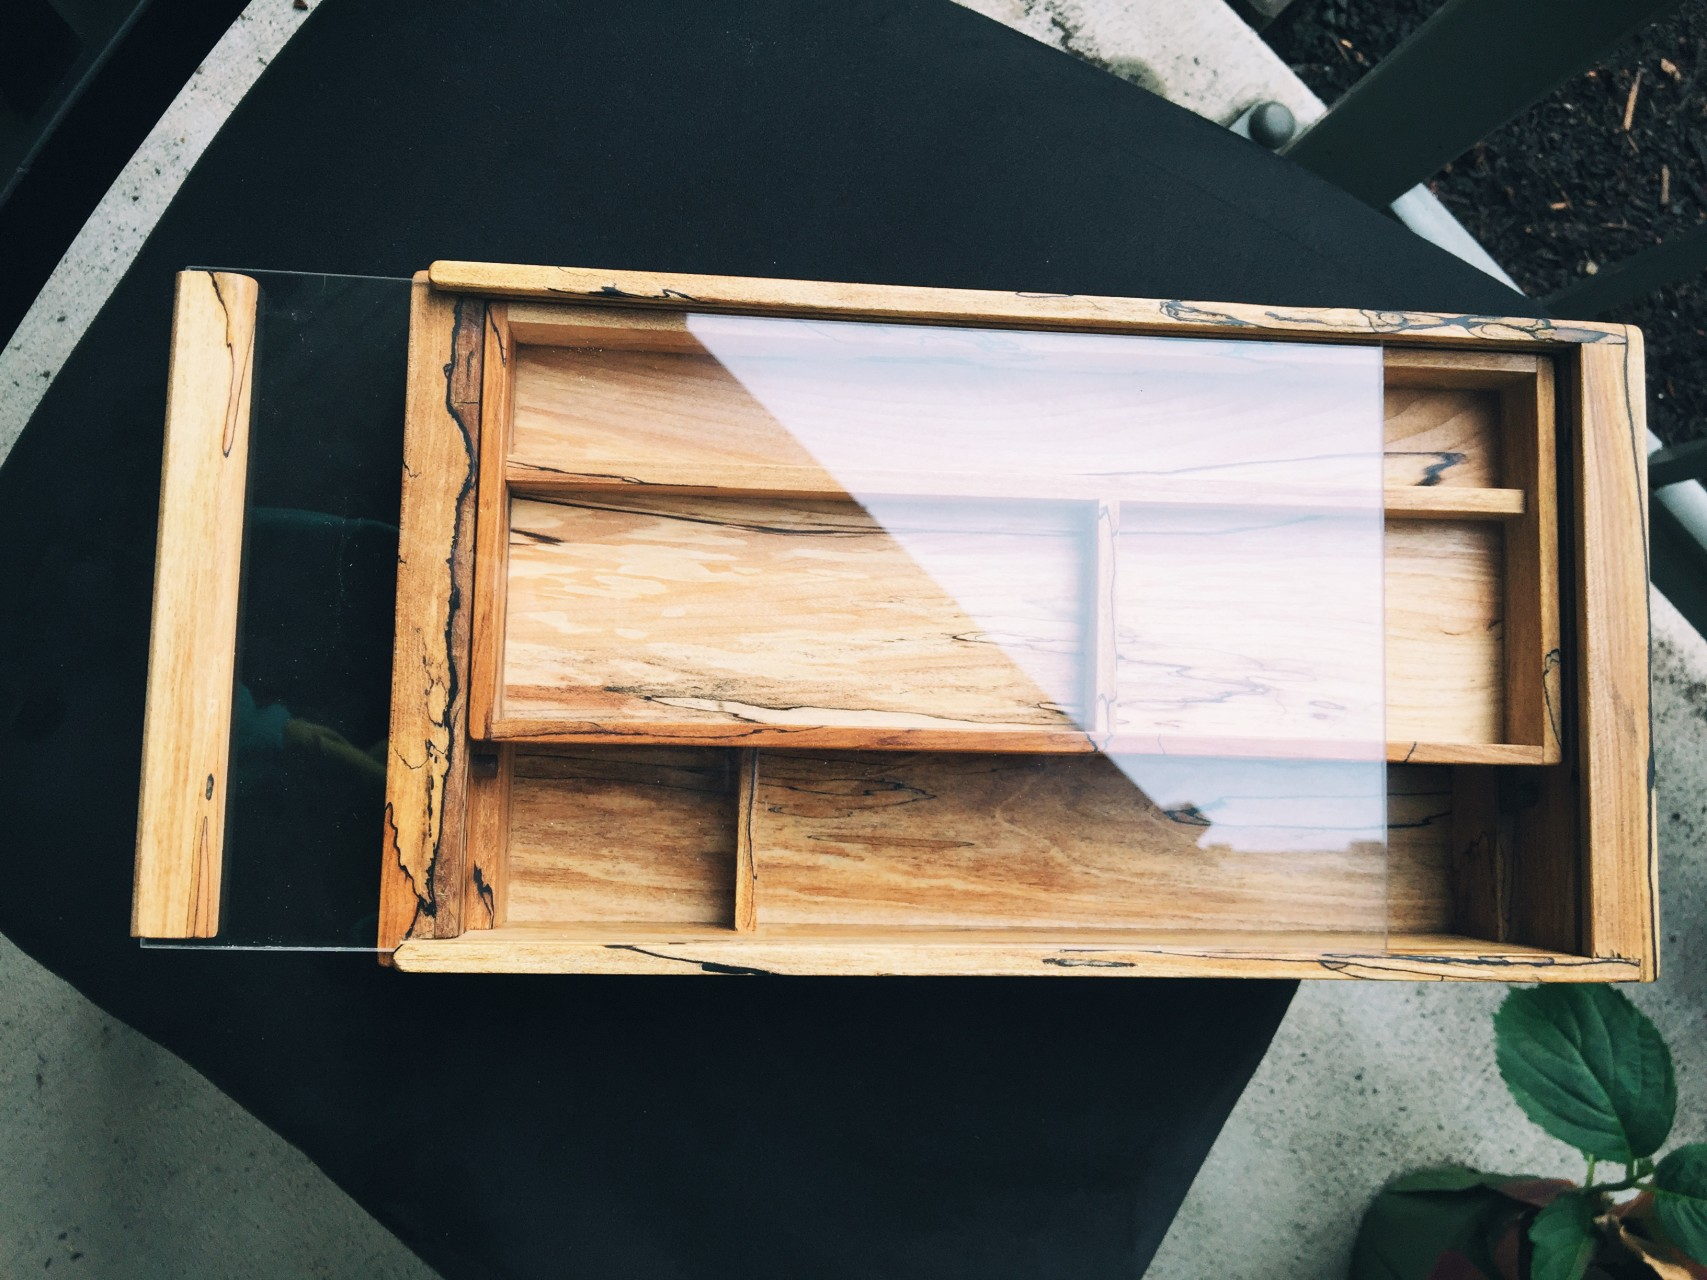 Toolbox in spalted Alder, felled in Portland. To find out more, read the article.